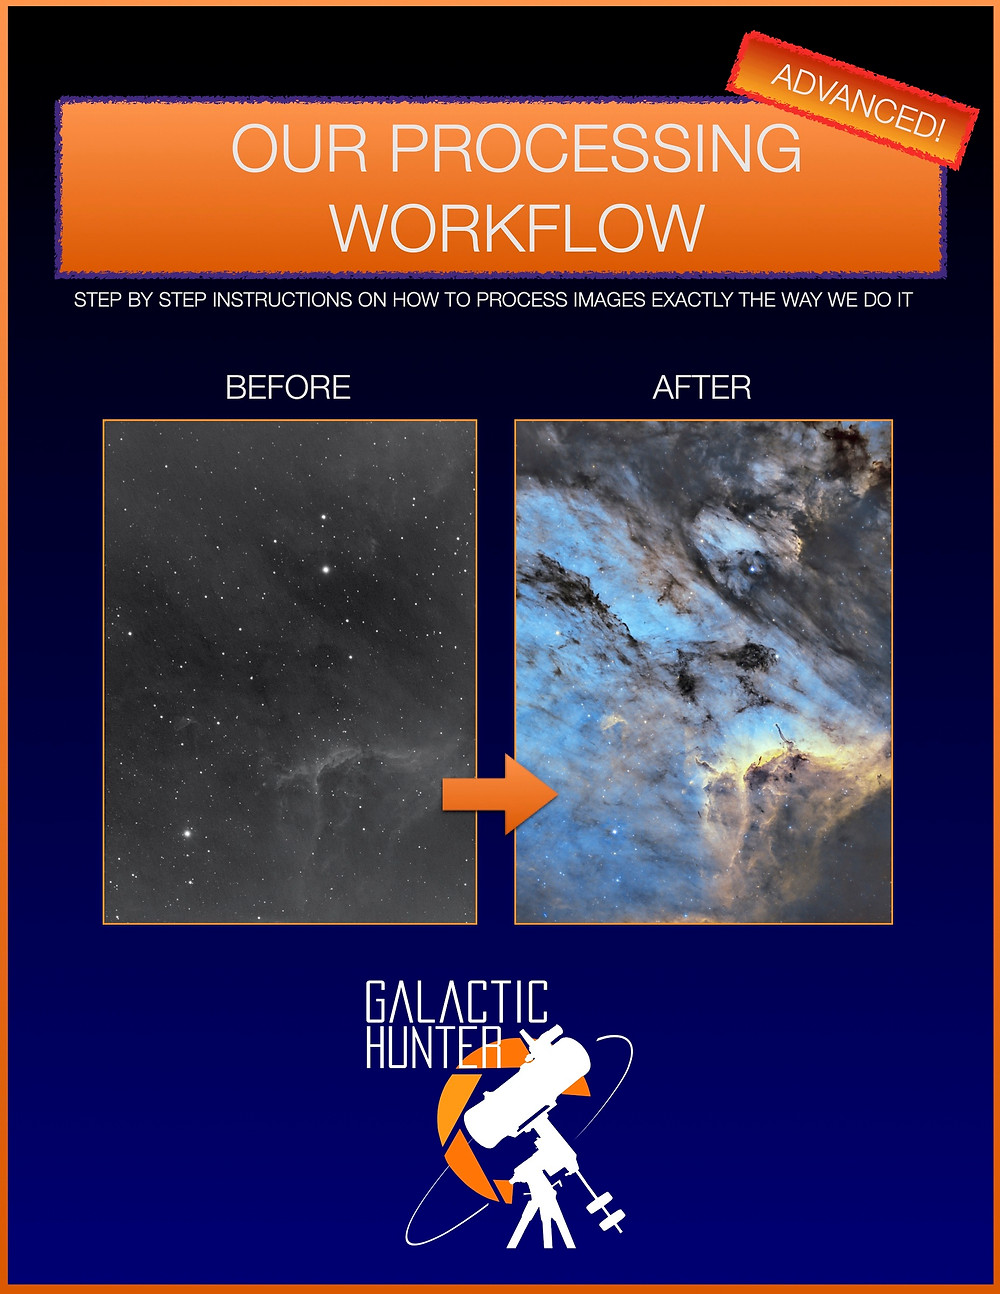 Galactic Hunter PixInsight Processing Workflow PDF guide